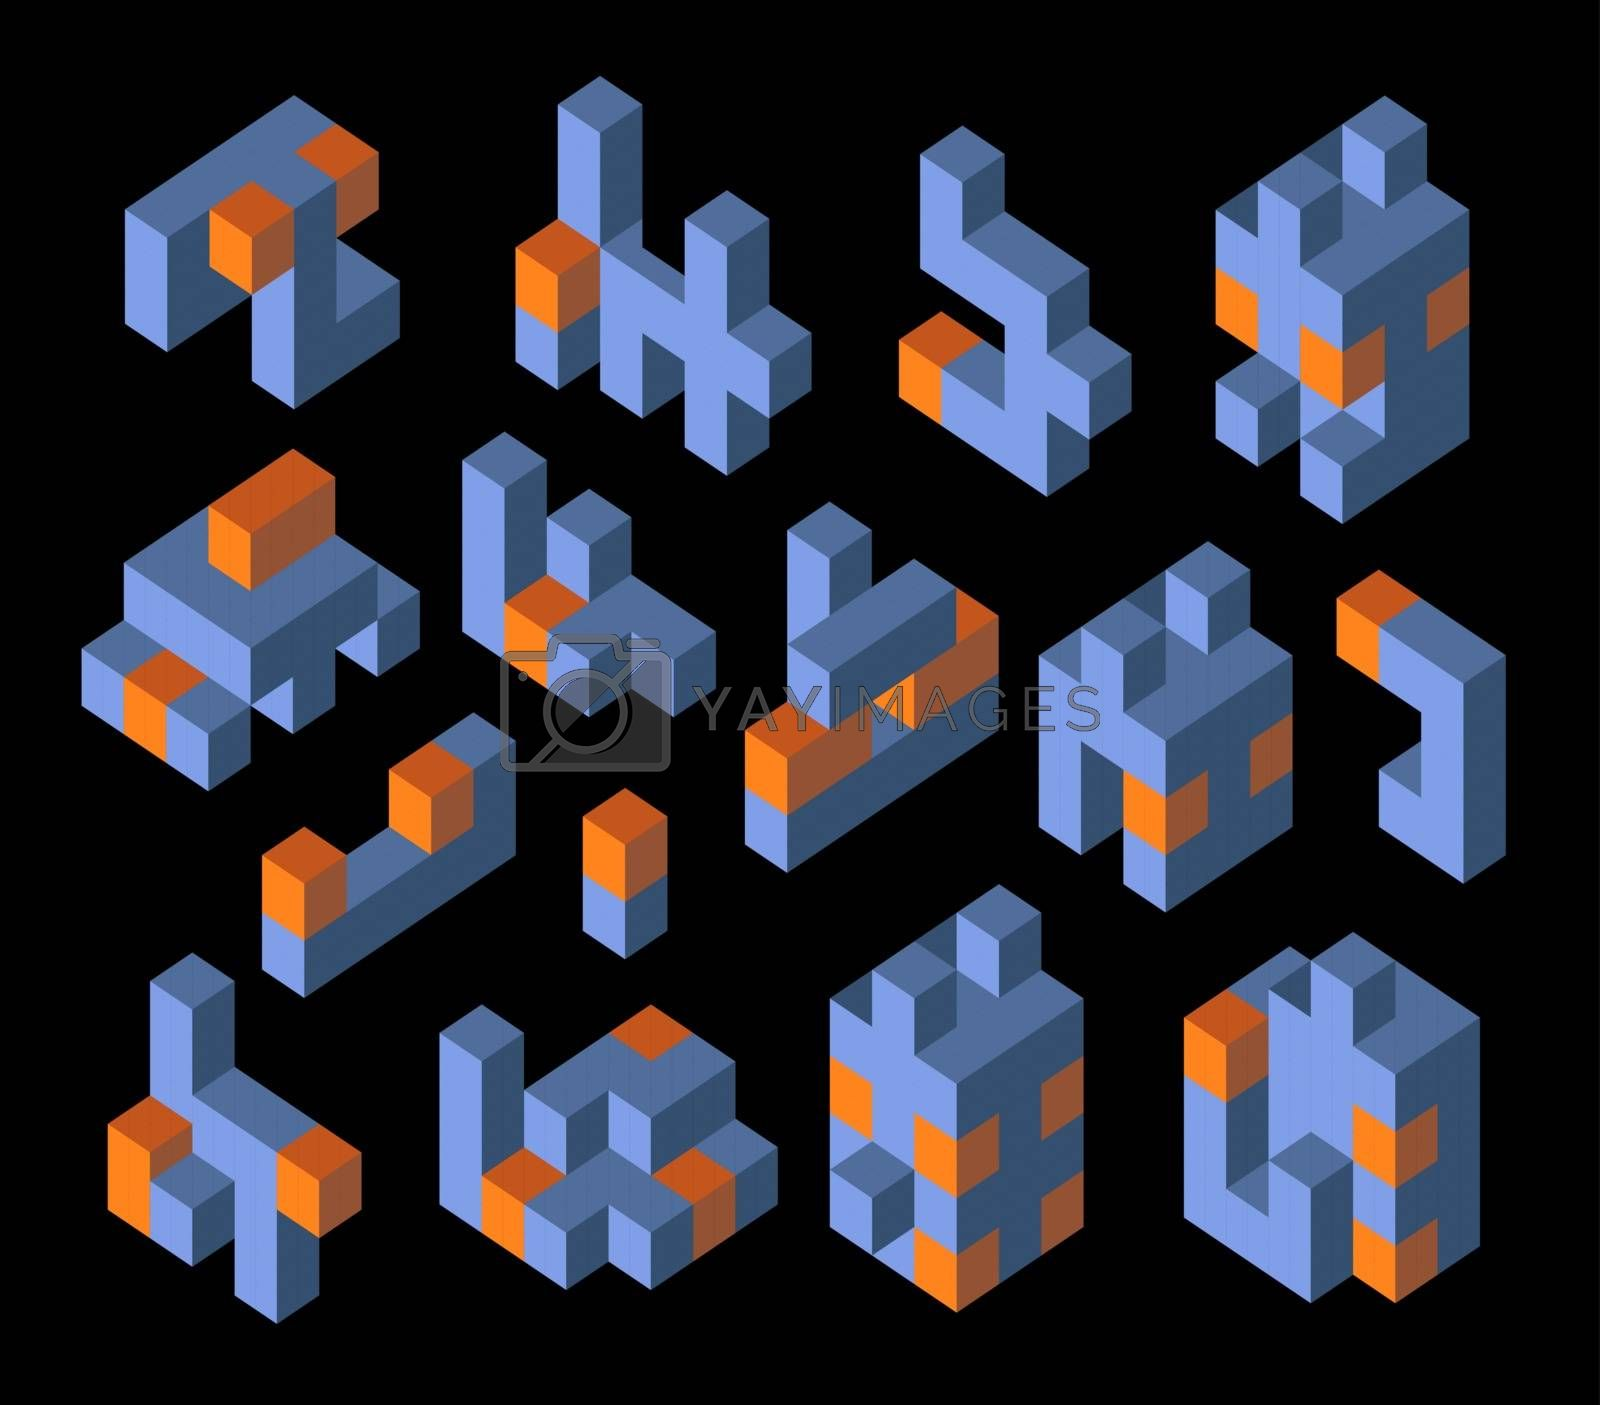 Isometric abstract geometric design elements with colored parts on a dark background